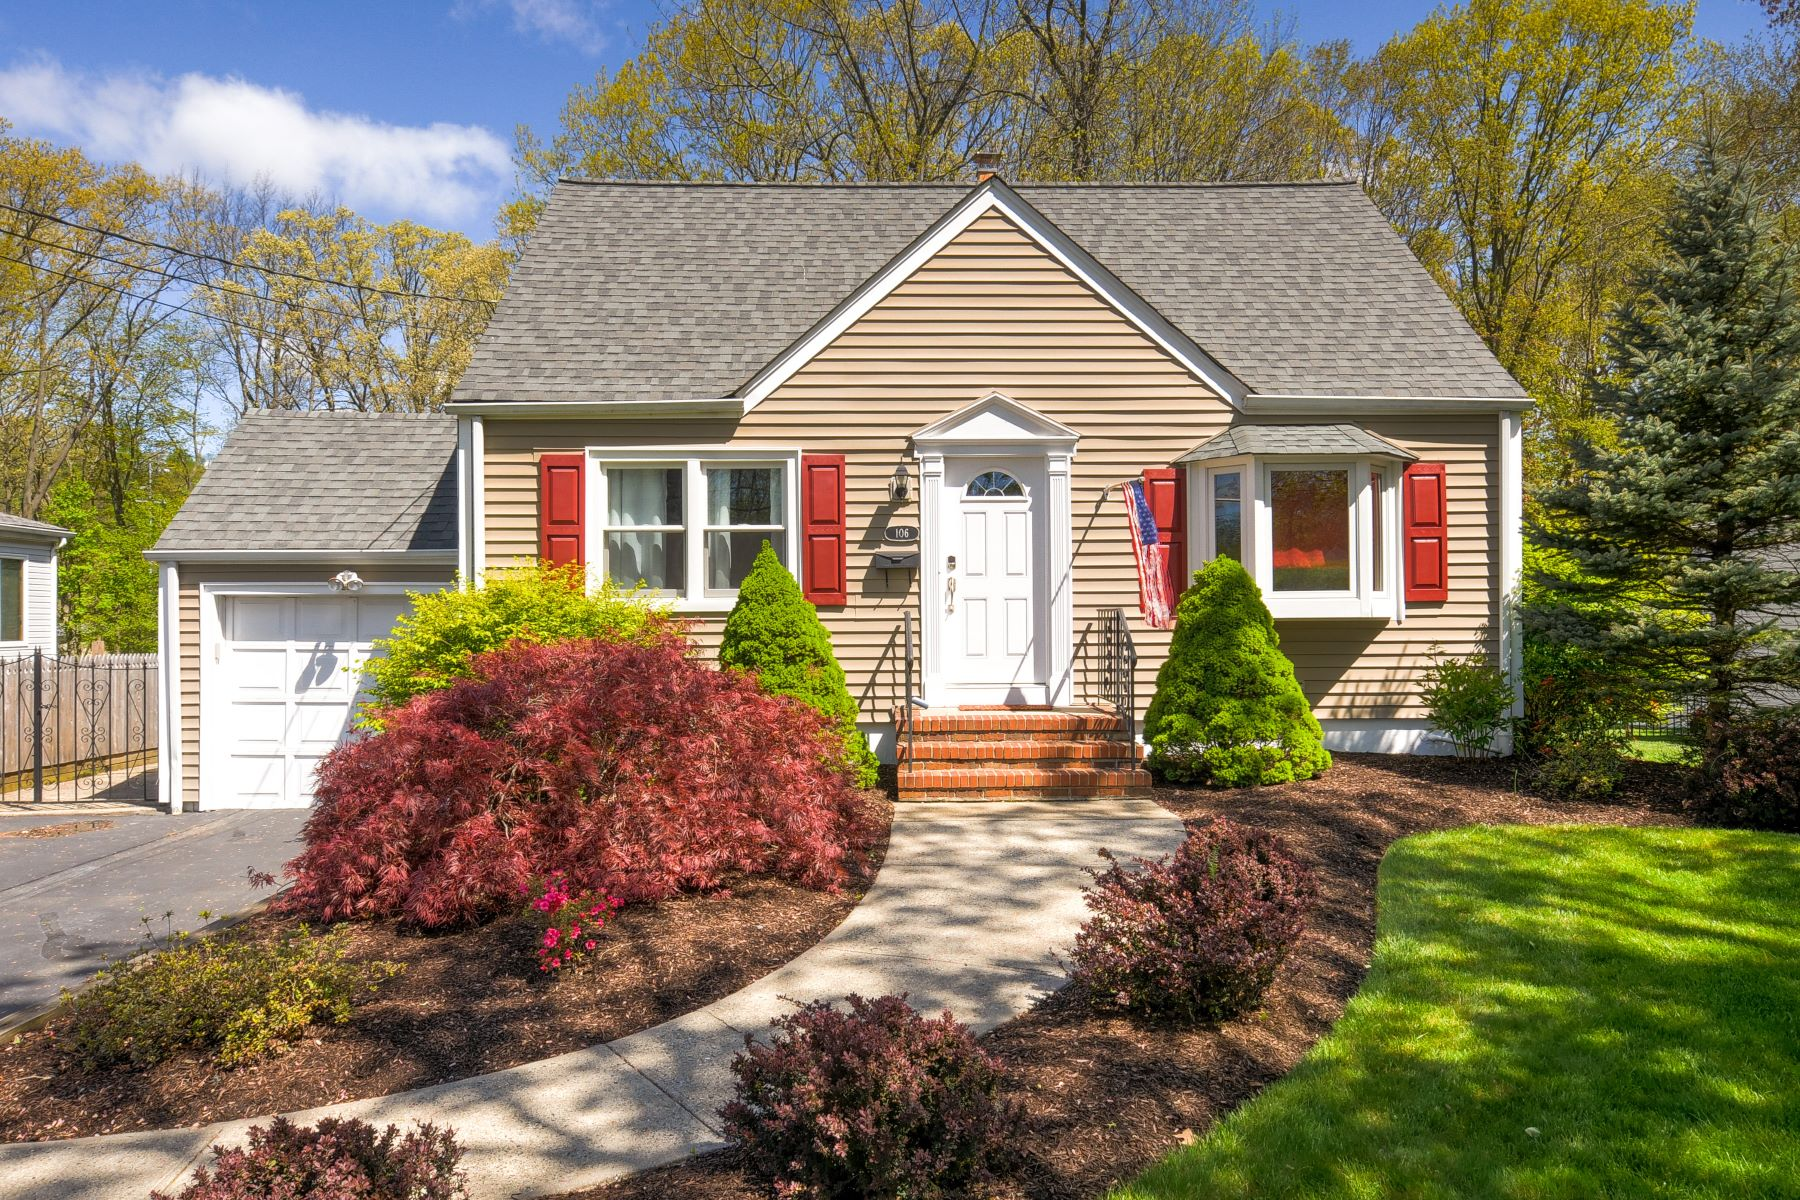 Single Family Homes for Sale at Charming Cape Cod 106 Commonwealth Avenue New Providence, New Jersey 07974 United States